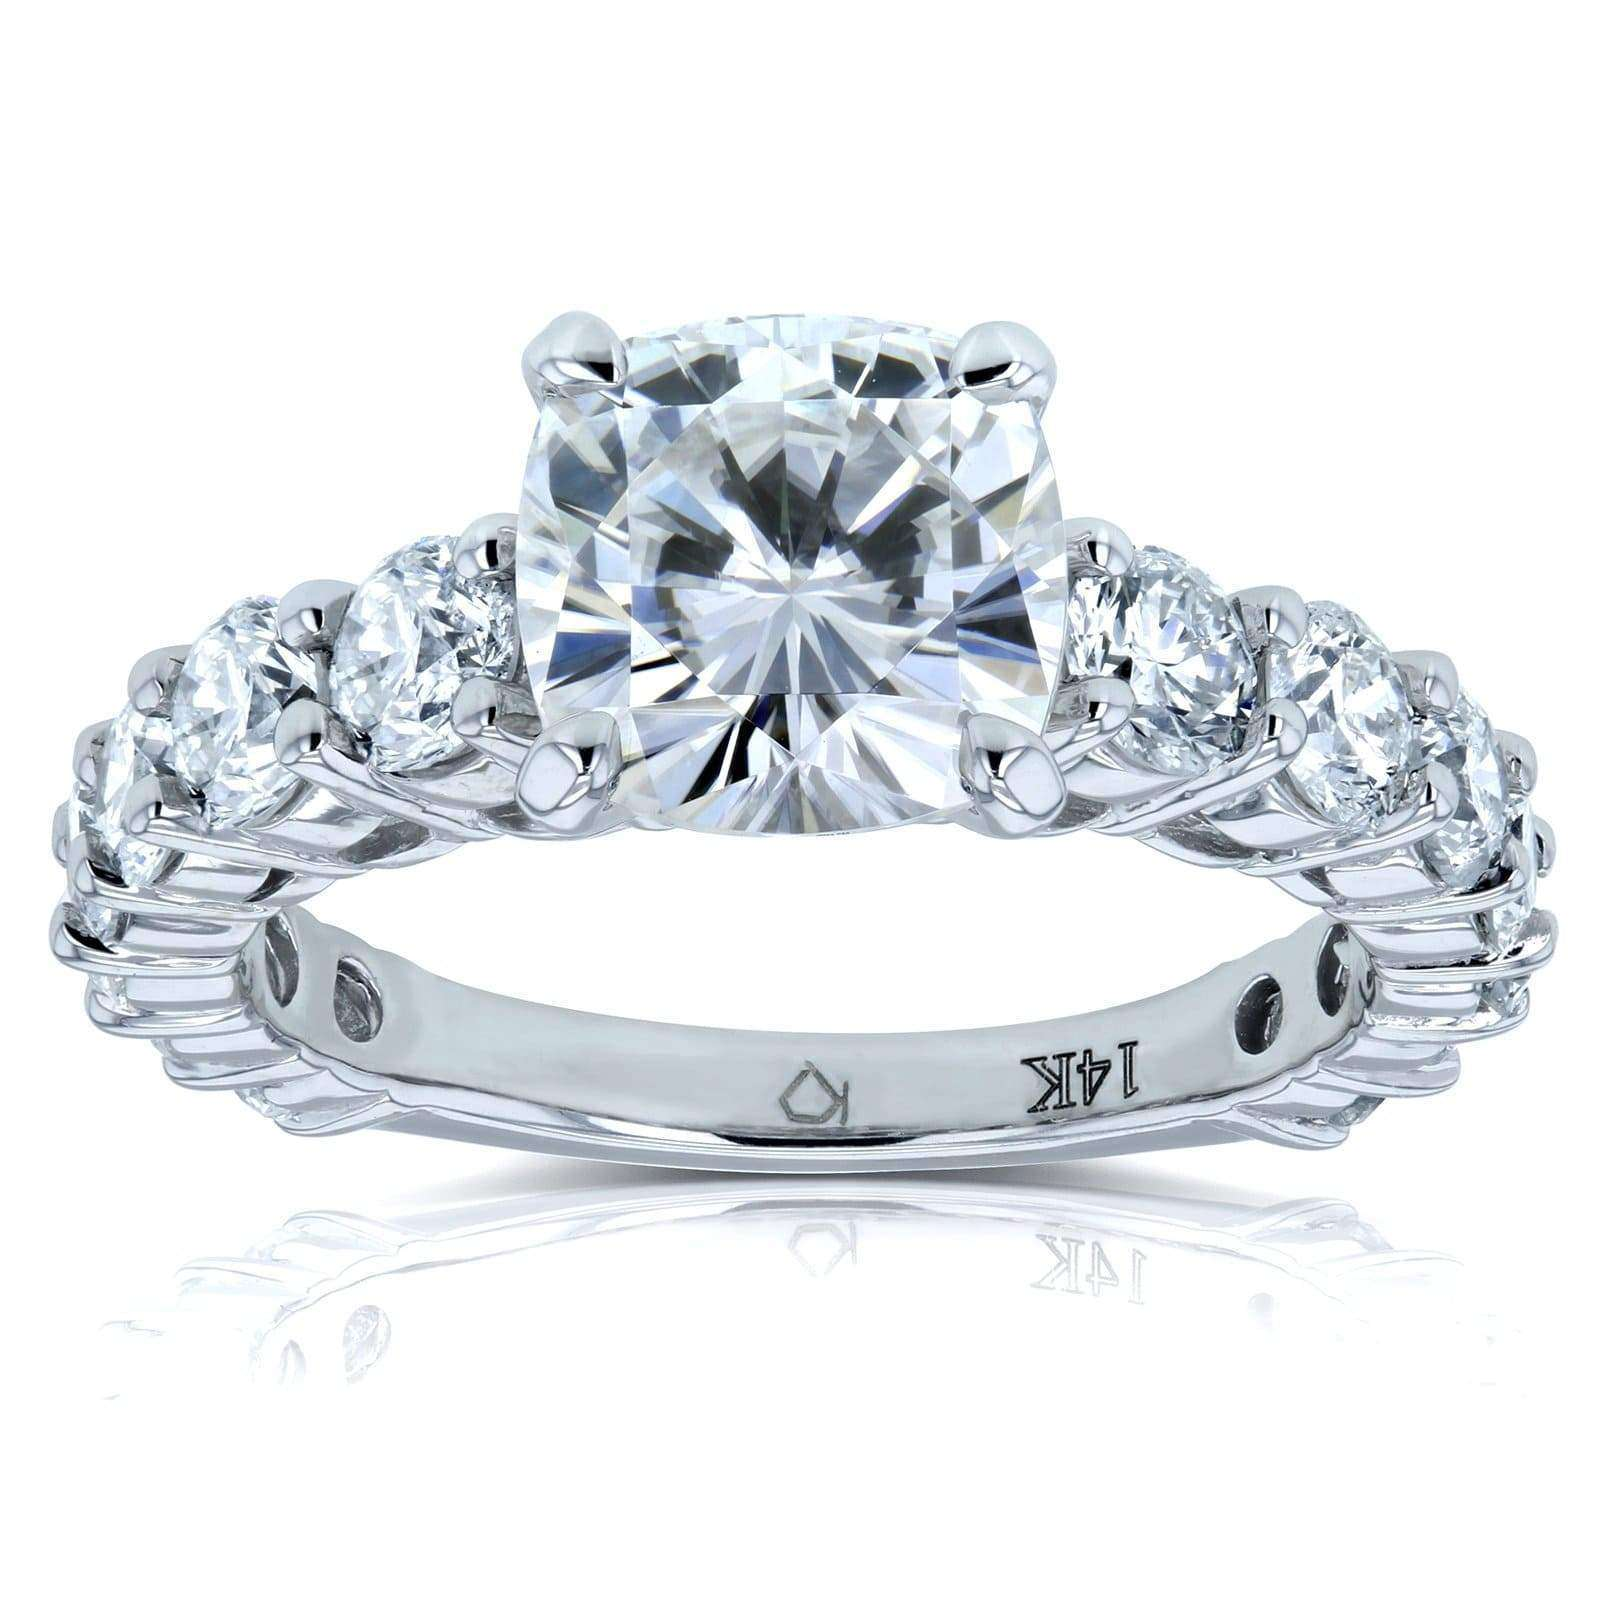 Promos Cushion Moissanite (FG) and Diamond Engagement Ring 3 2/5 CTW 14k White Gold - 6.5